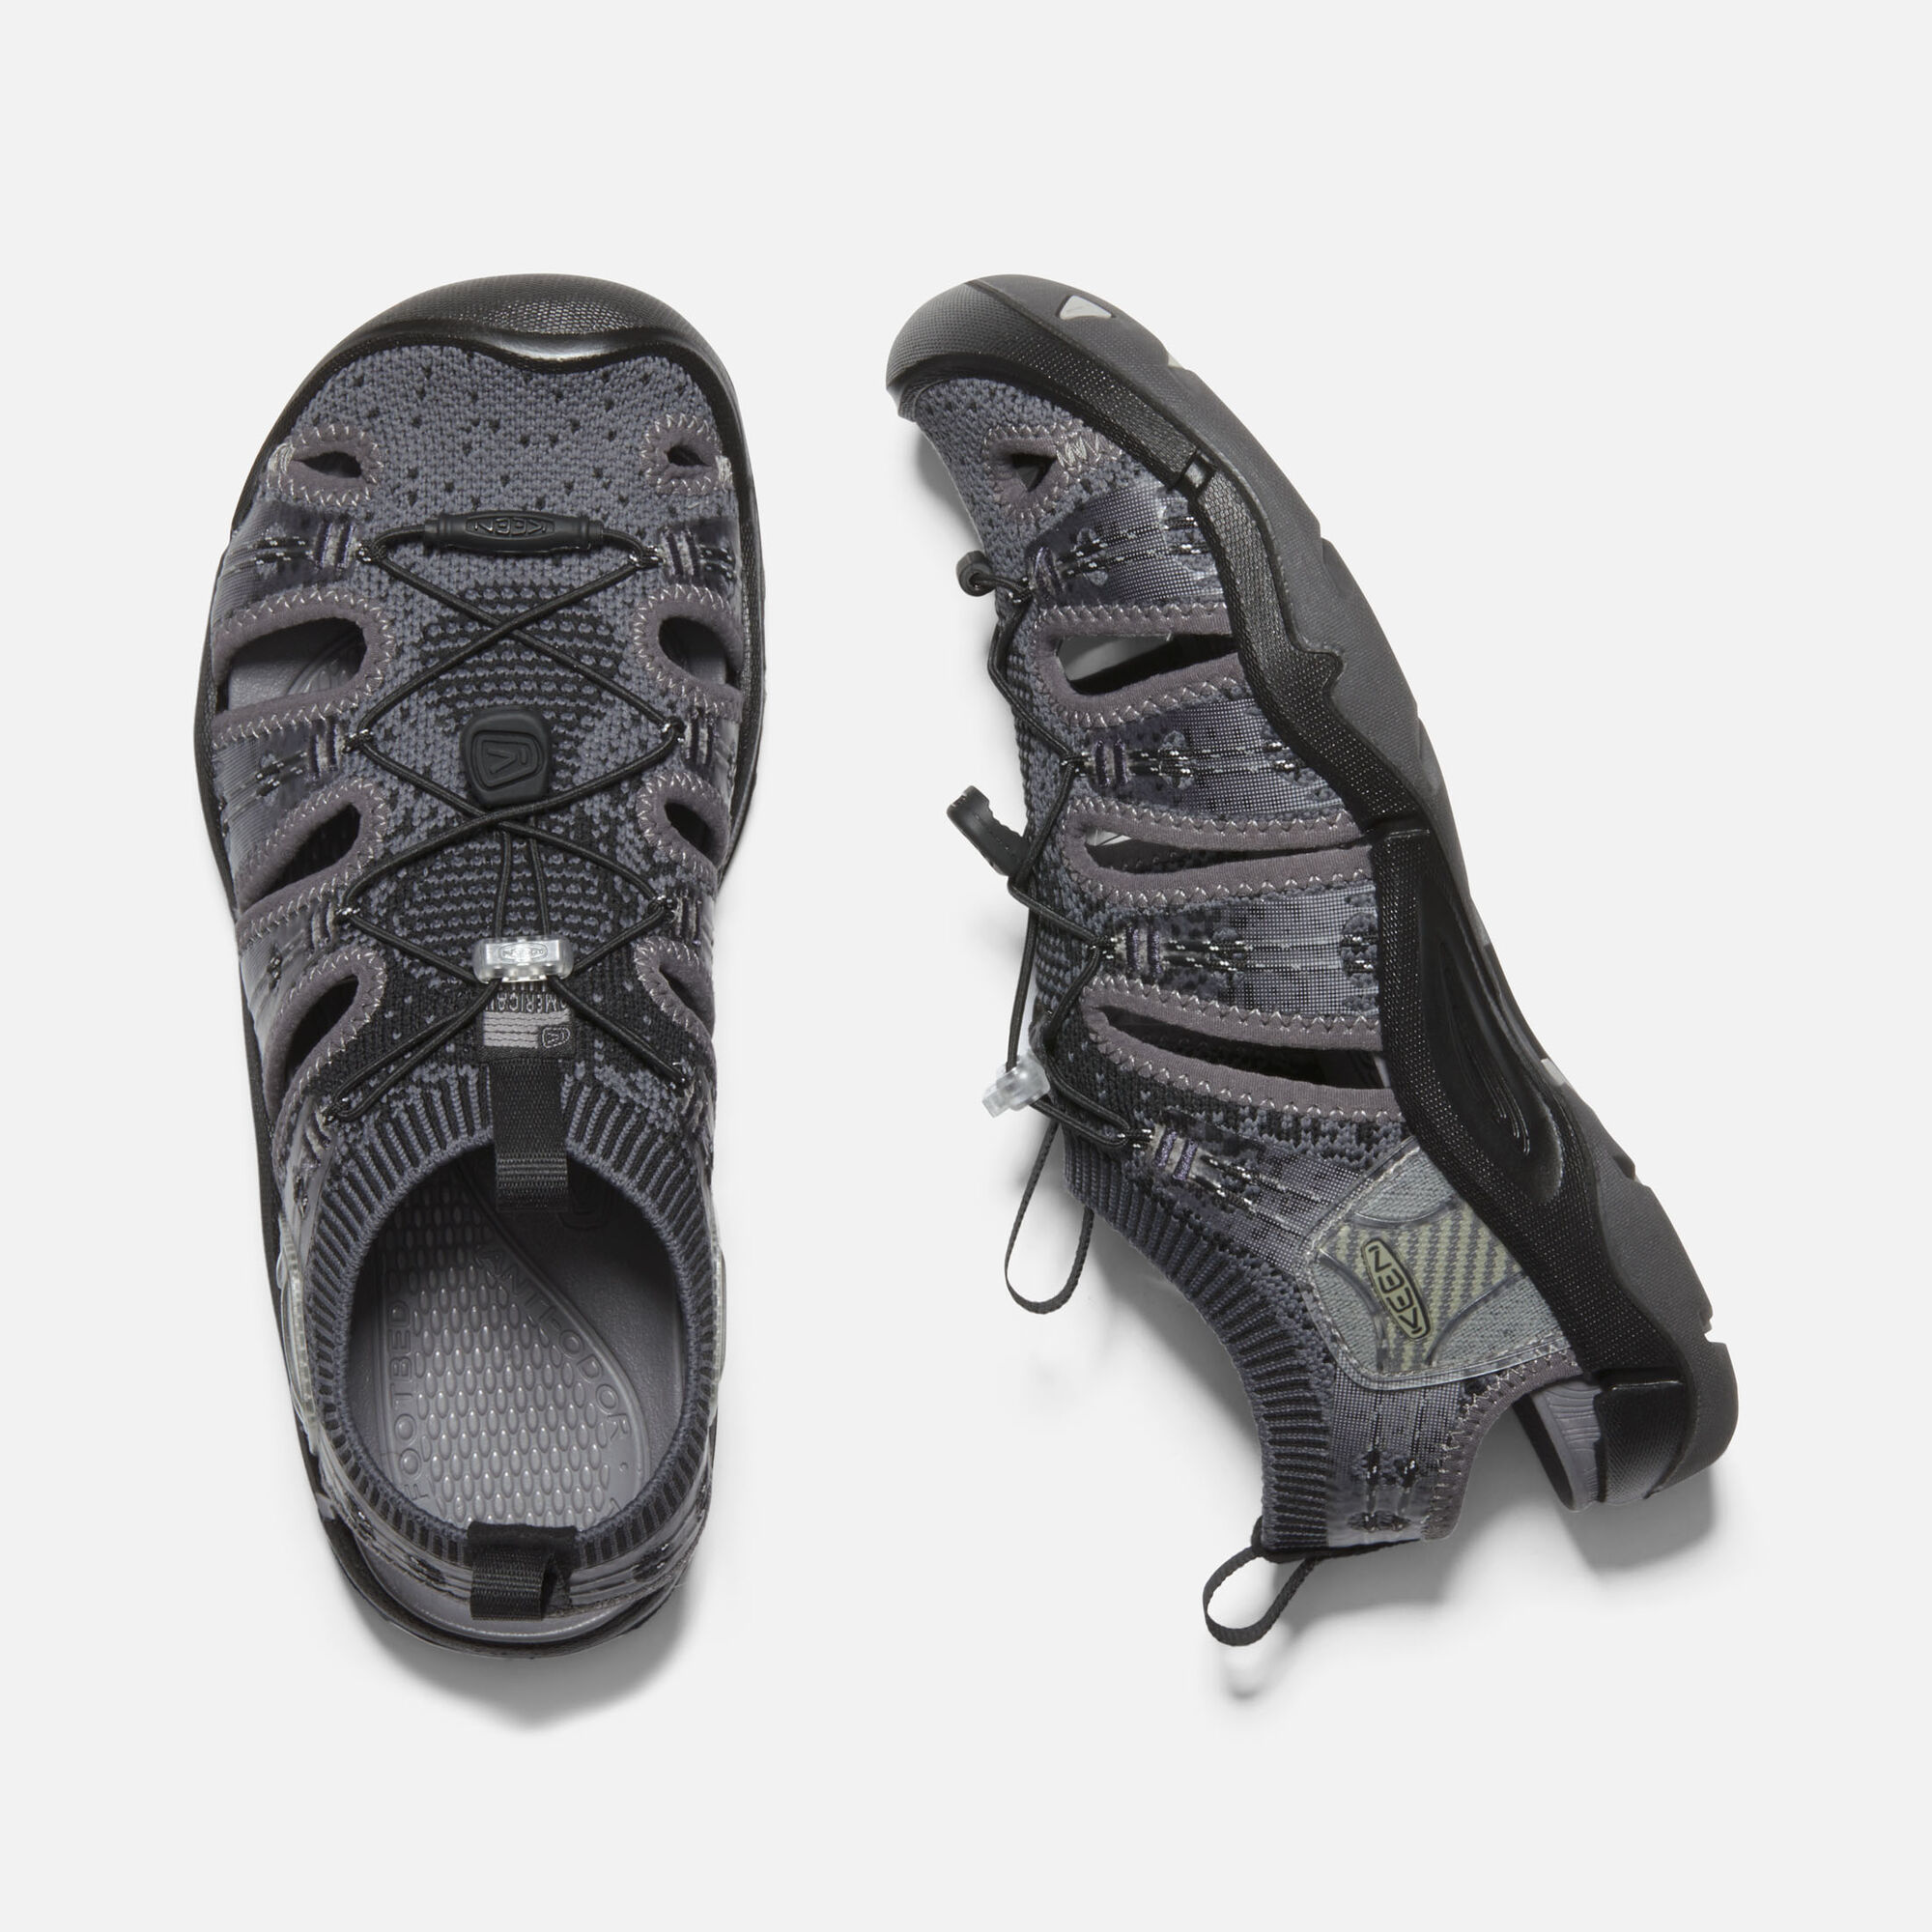 d9b9a5a6bbee Women s EVOFIT ONE in HEATHERED BLACK MAGNET - small view.